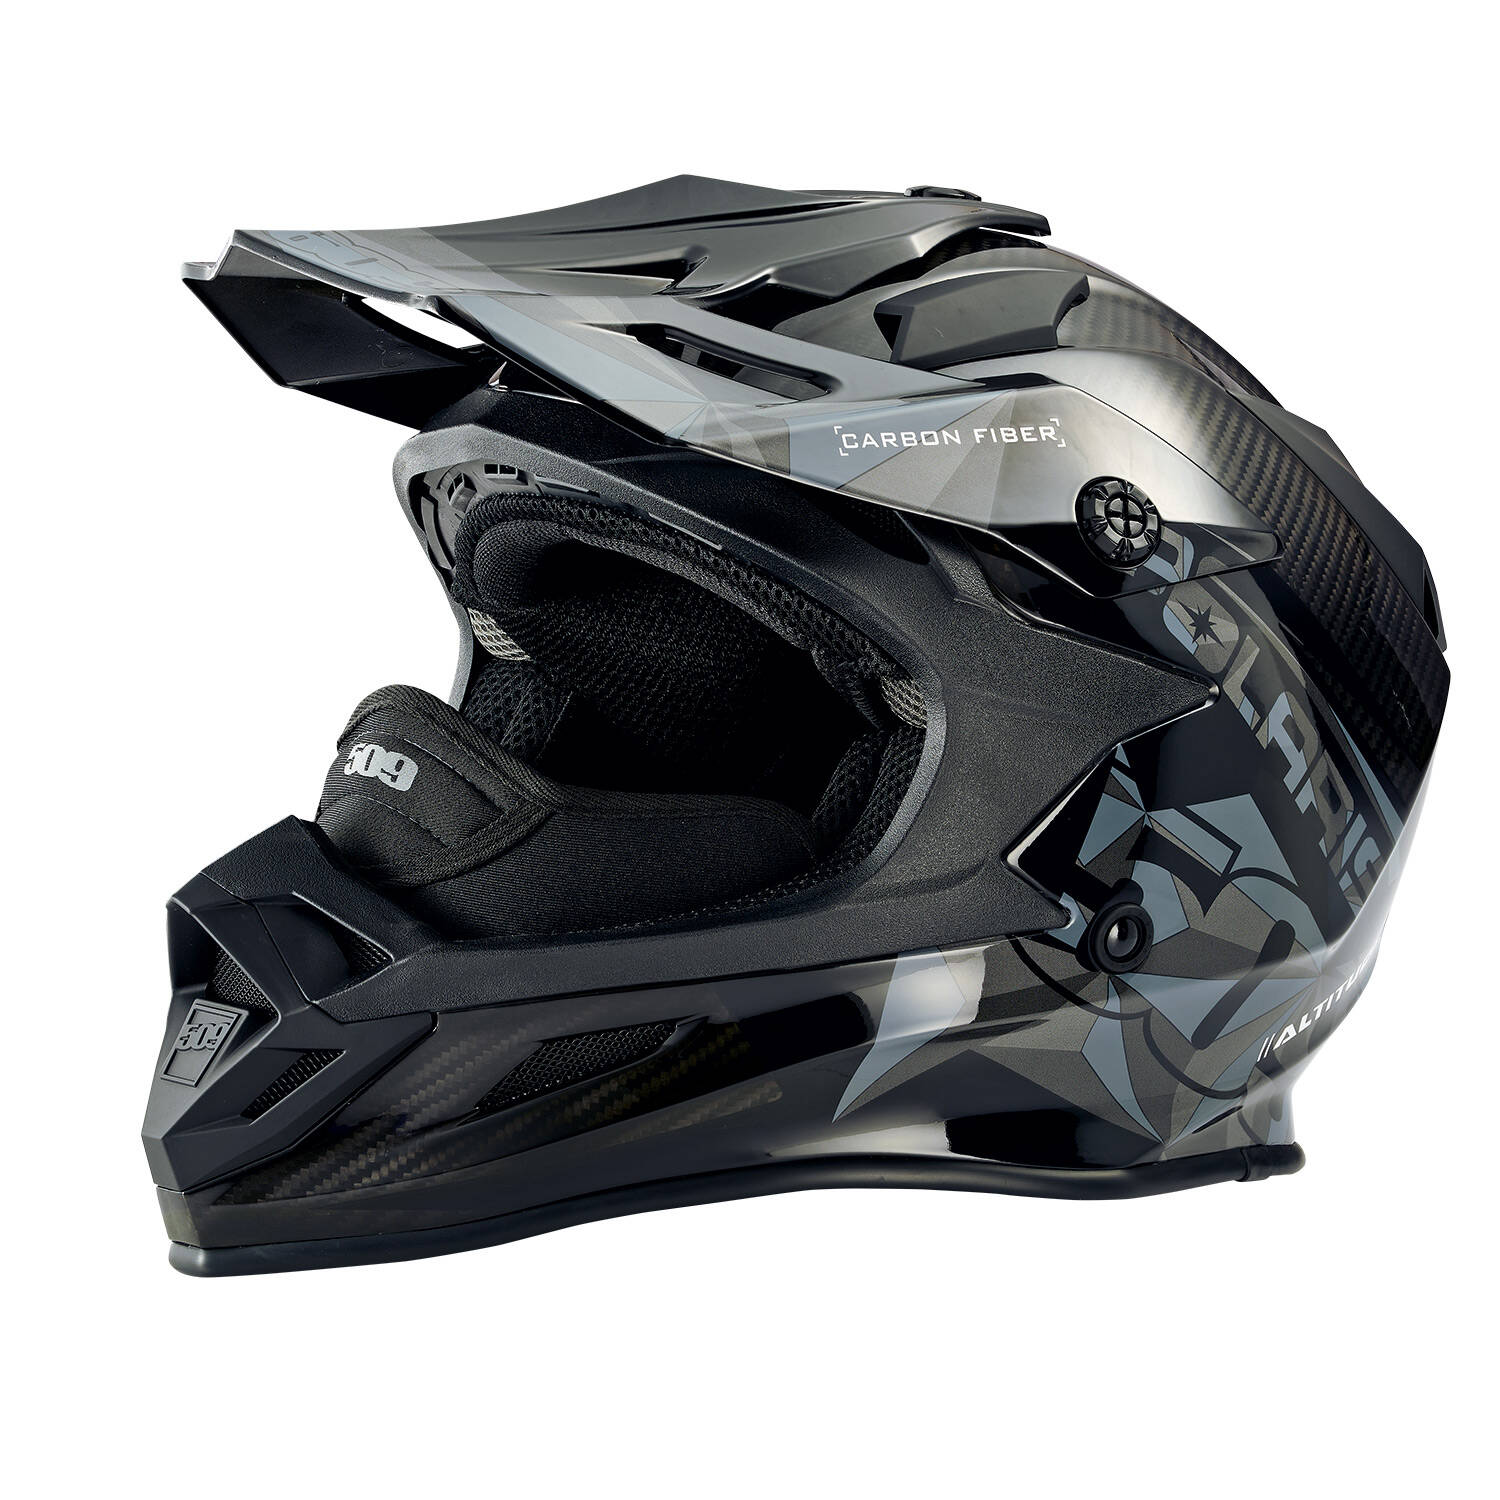 509® Altitude Adult Moto Helmet with Camera Mount, Gloss Black Carbon